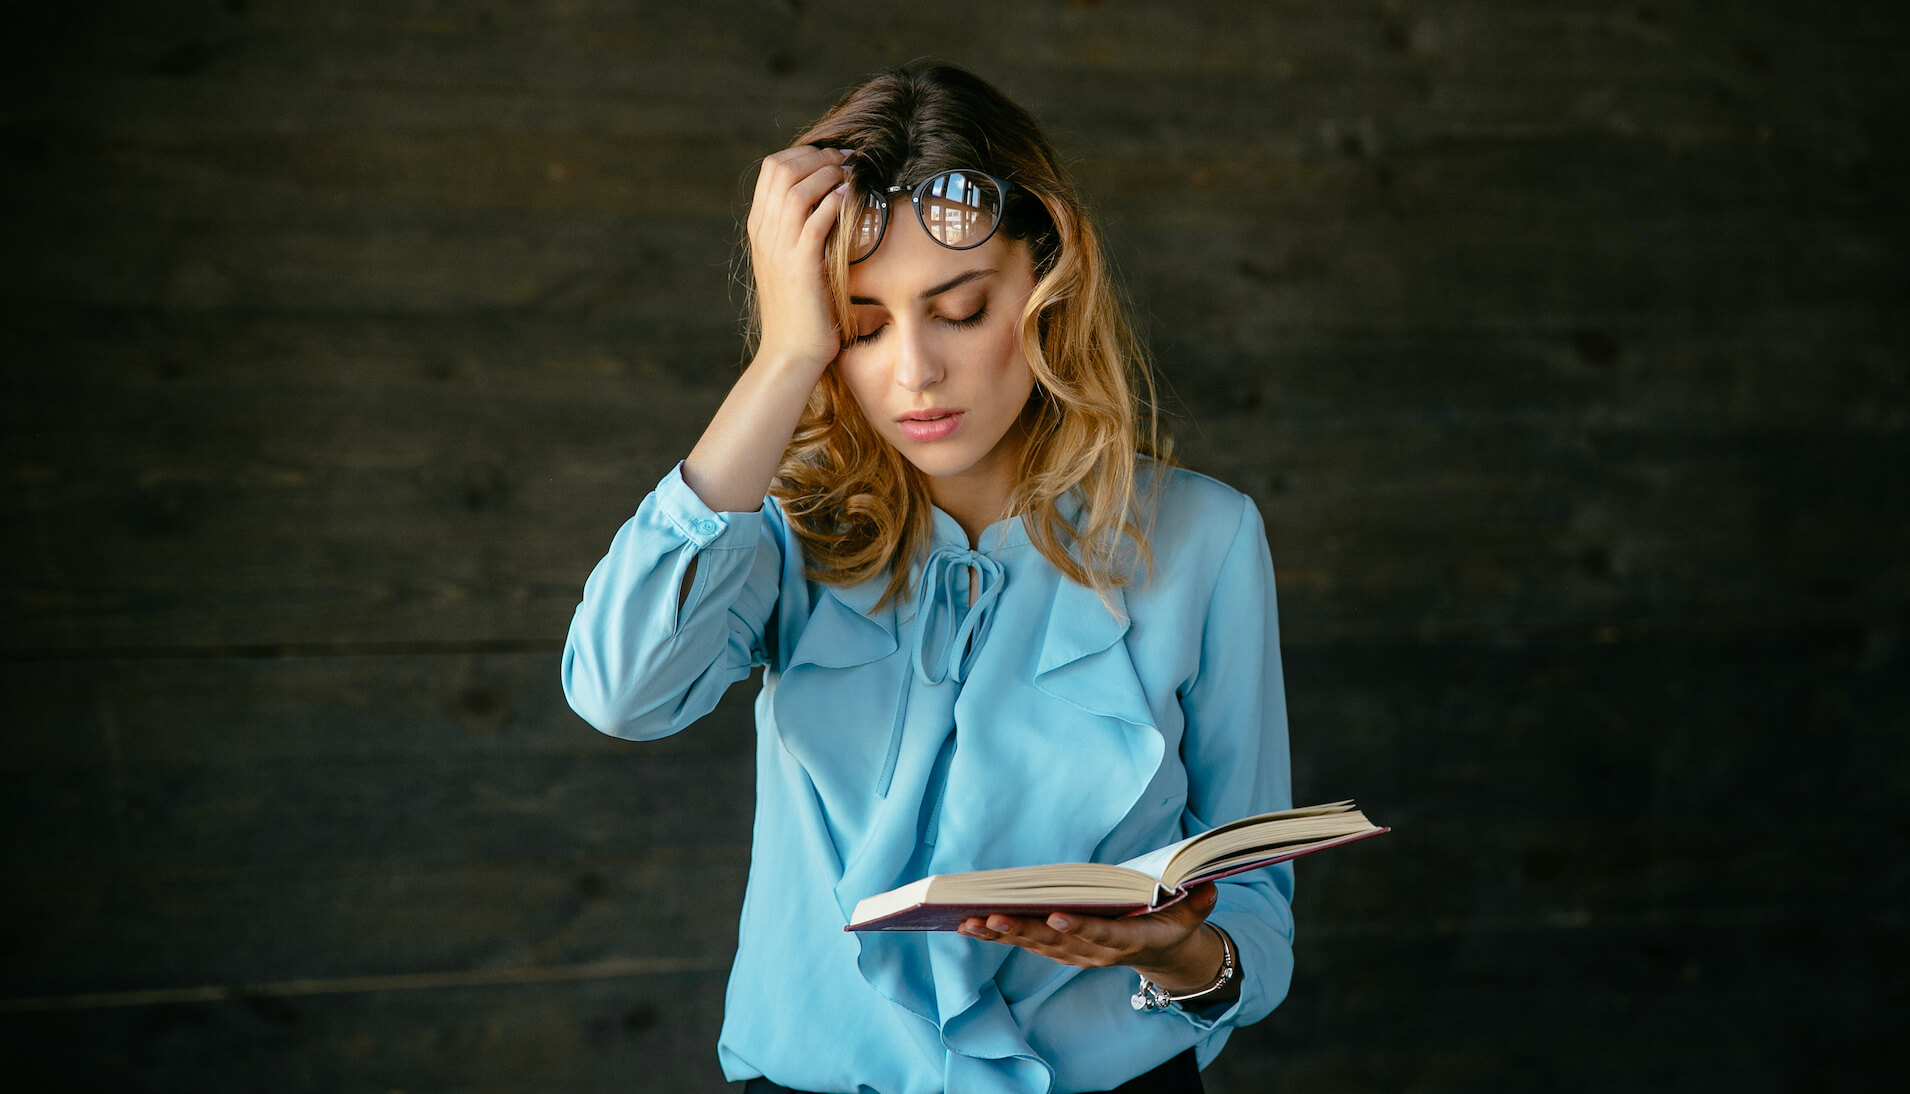 common causes of dizziness and symptoms of dizziness